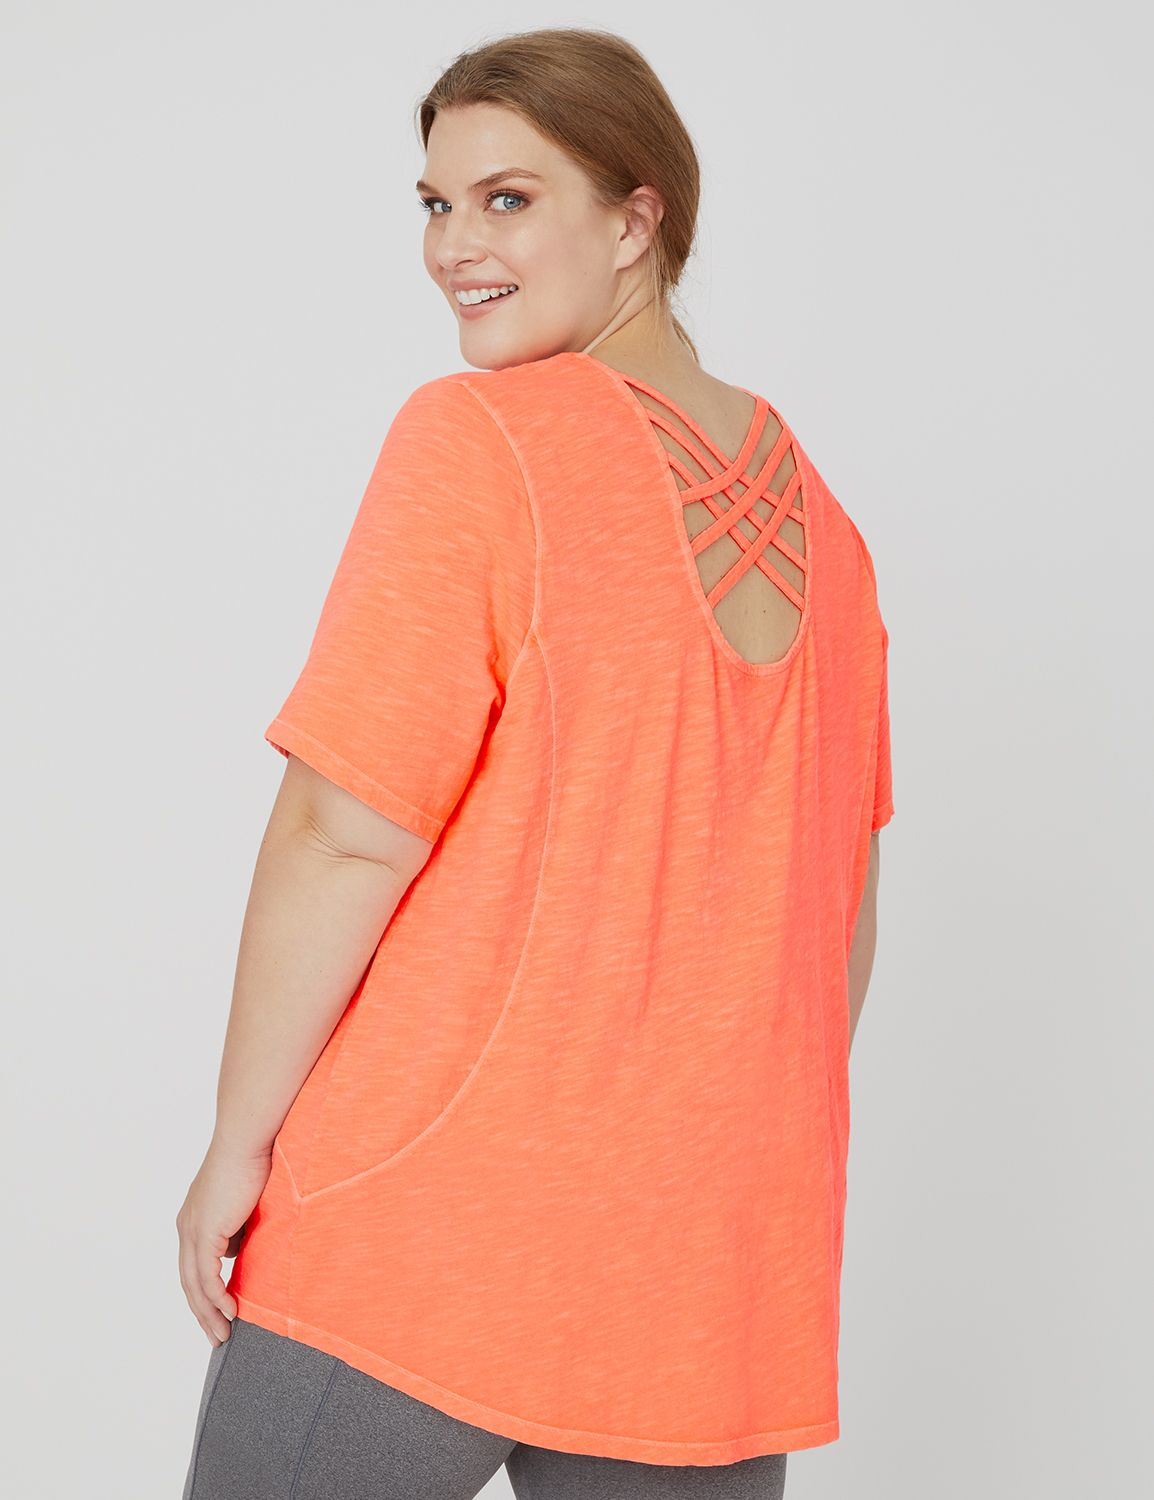 Short-Sleeve Crisscross Active Tee 1088551 SS Criss-Cross Back Top MP-300097719